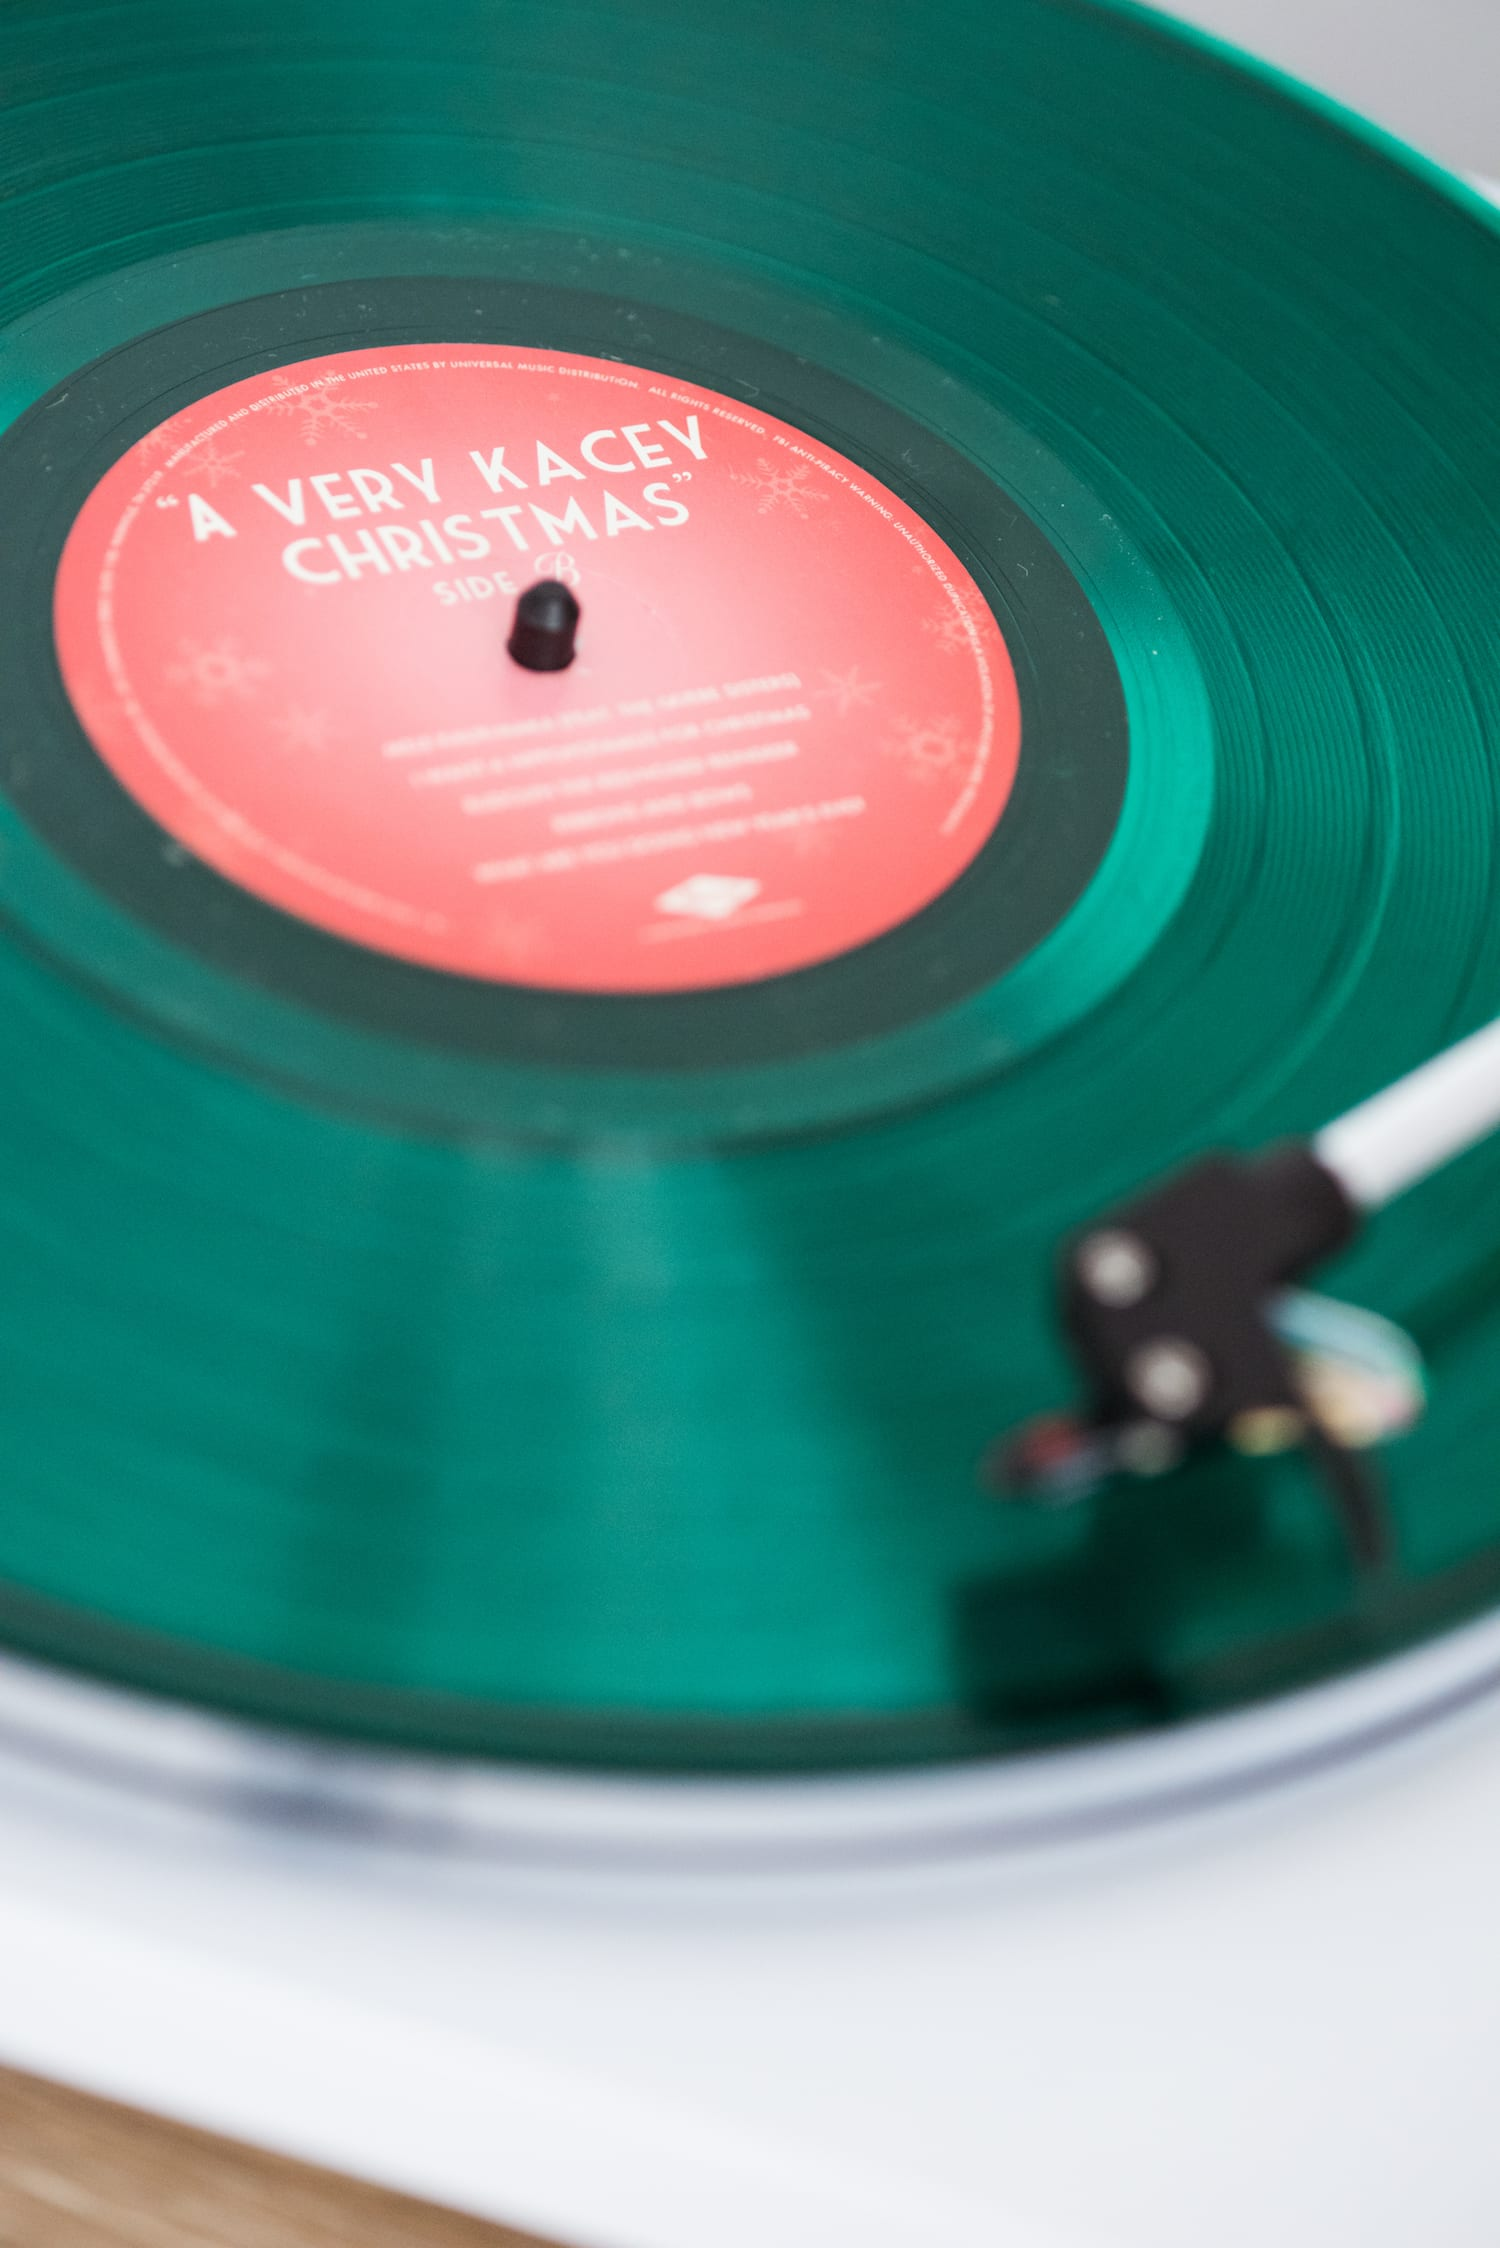 The Best Christmas Albums on Vinyl | Christmas music, holiday entertaining tips, Christmas recipes and more from entertaining blog @cydconverse